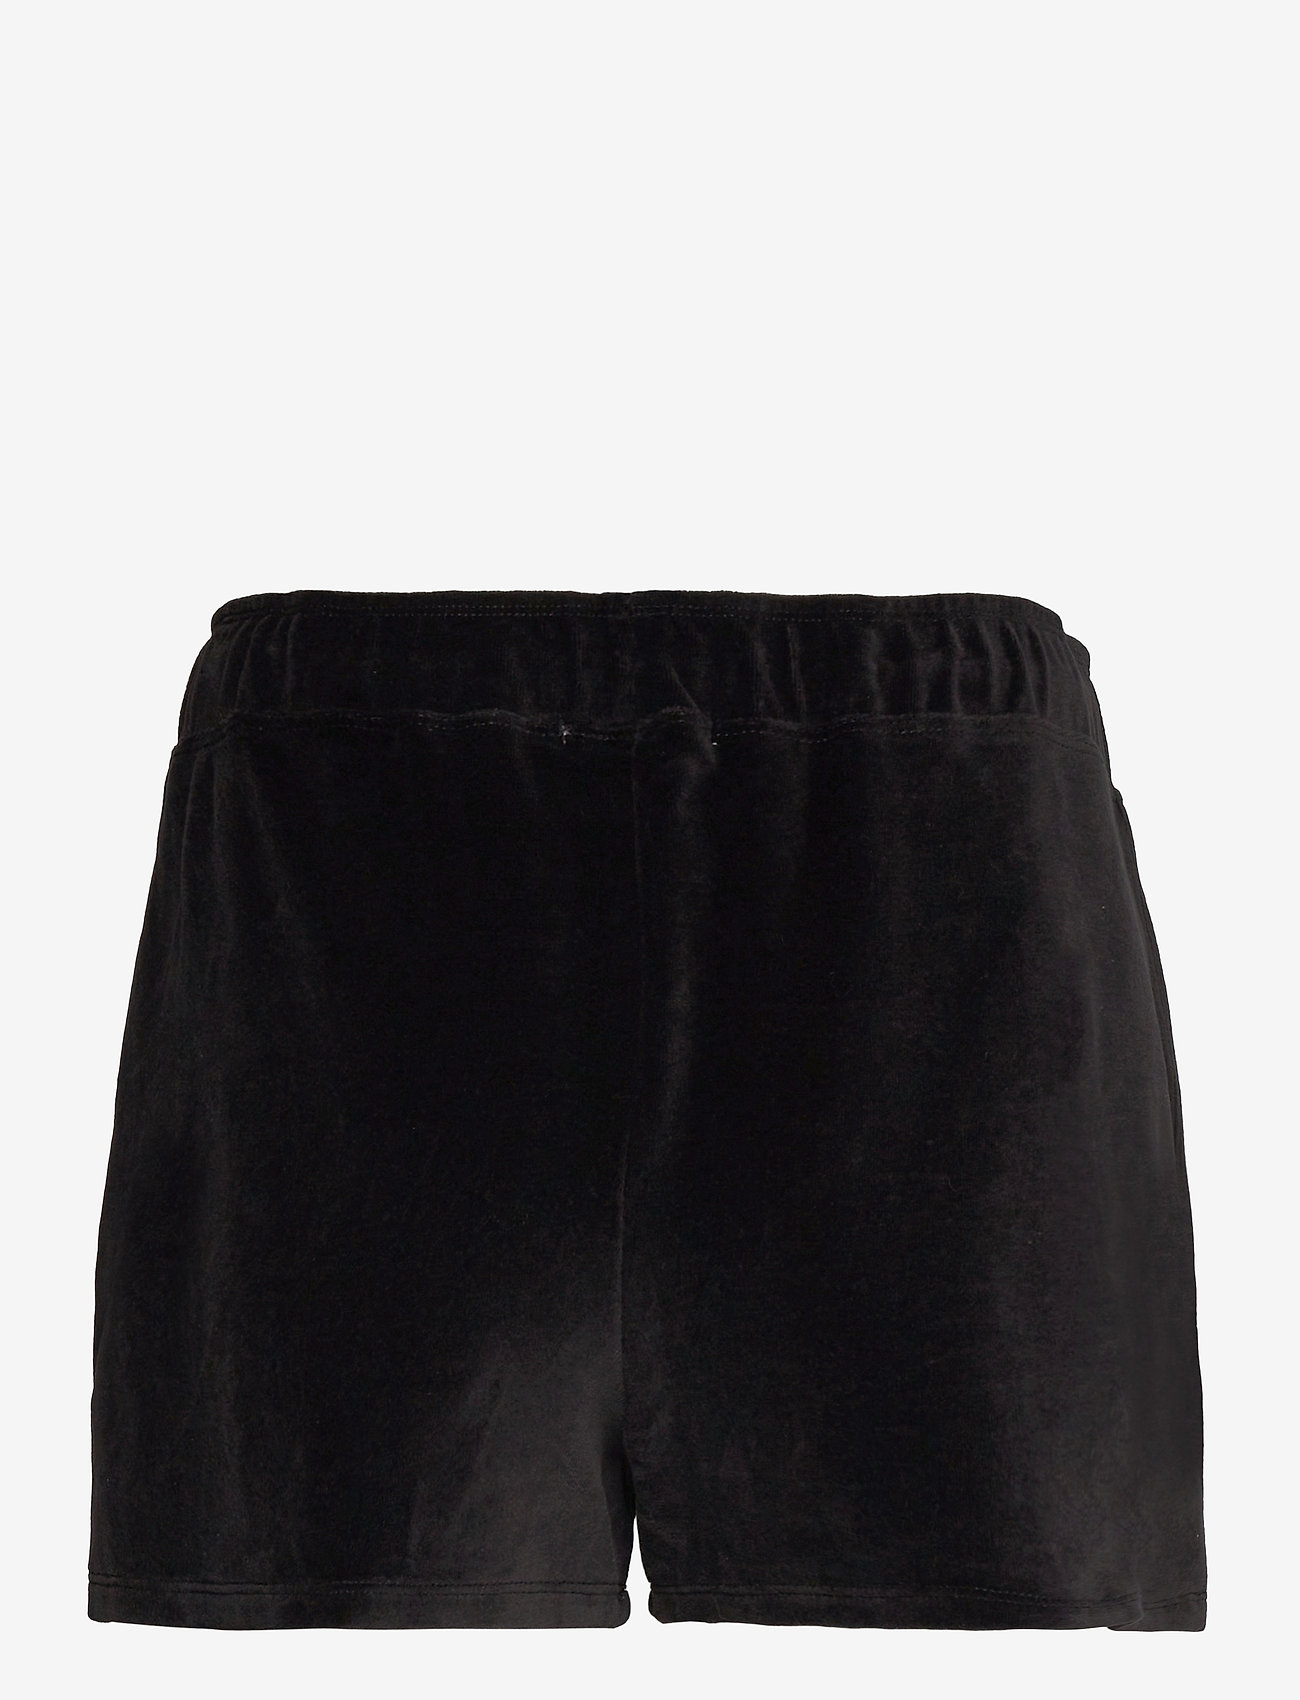 VANS - TOGETHER FOREVER SHORT - training korte broek - black - 1